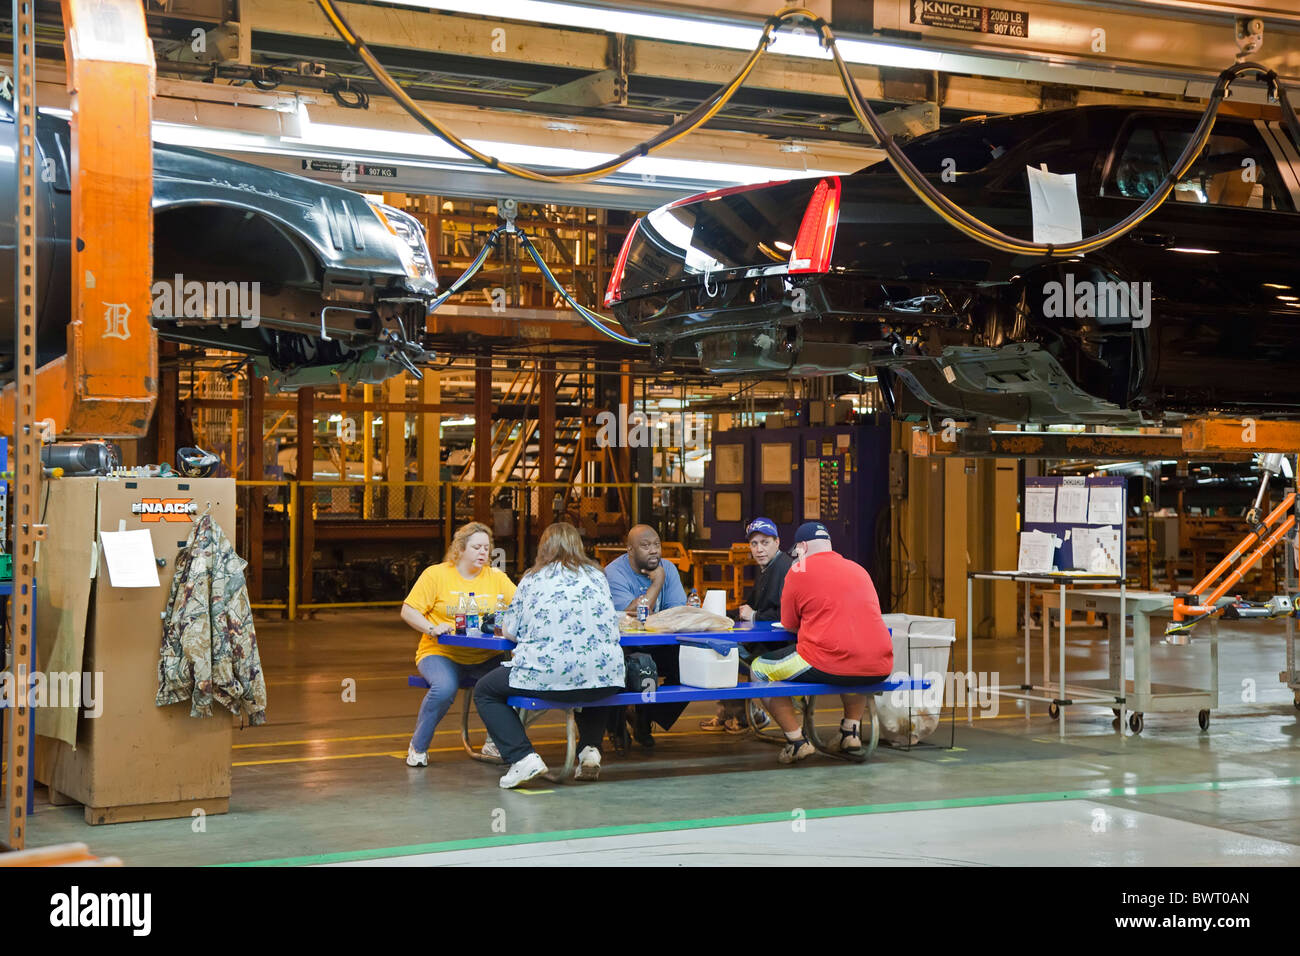 Workers Eat Lunch at Auto Assembly Plant - Stock Image